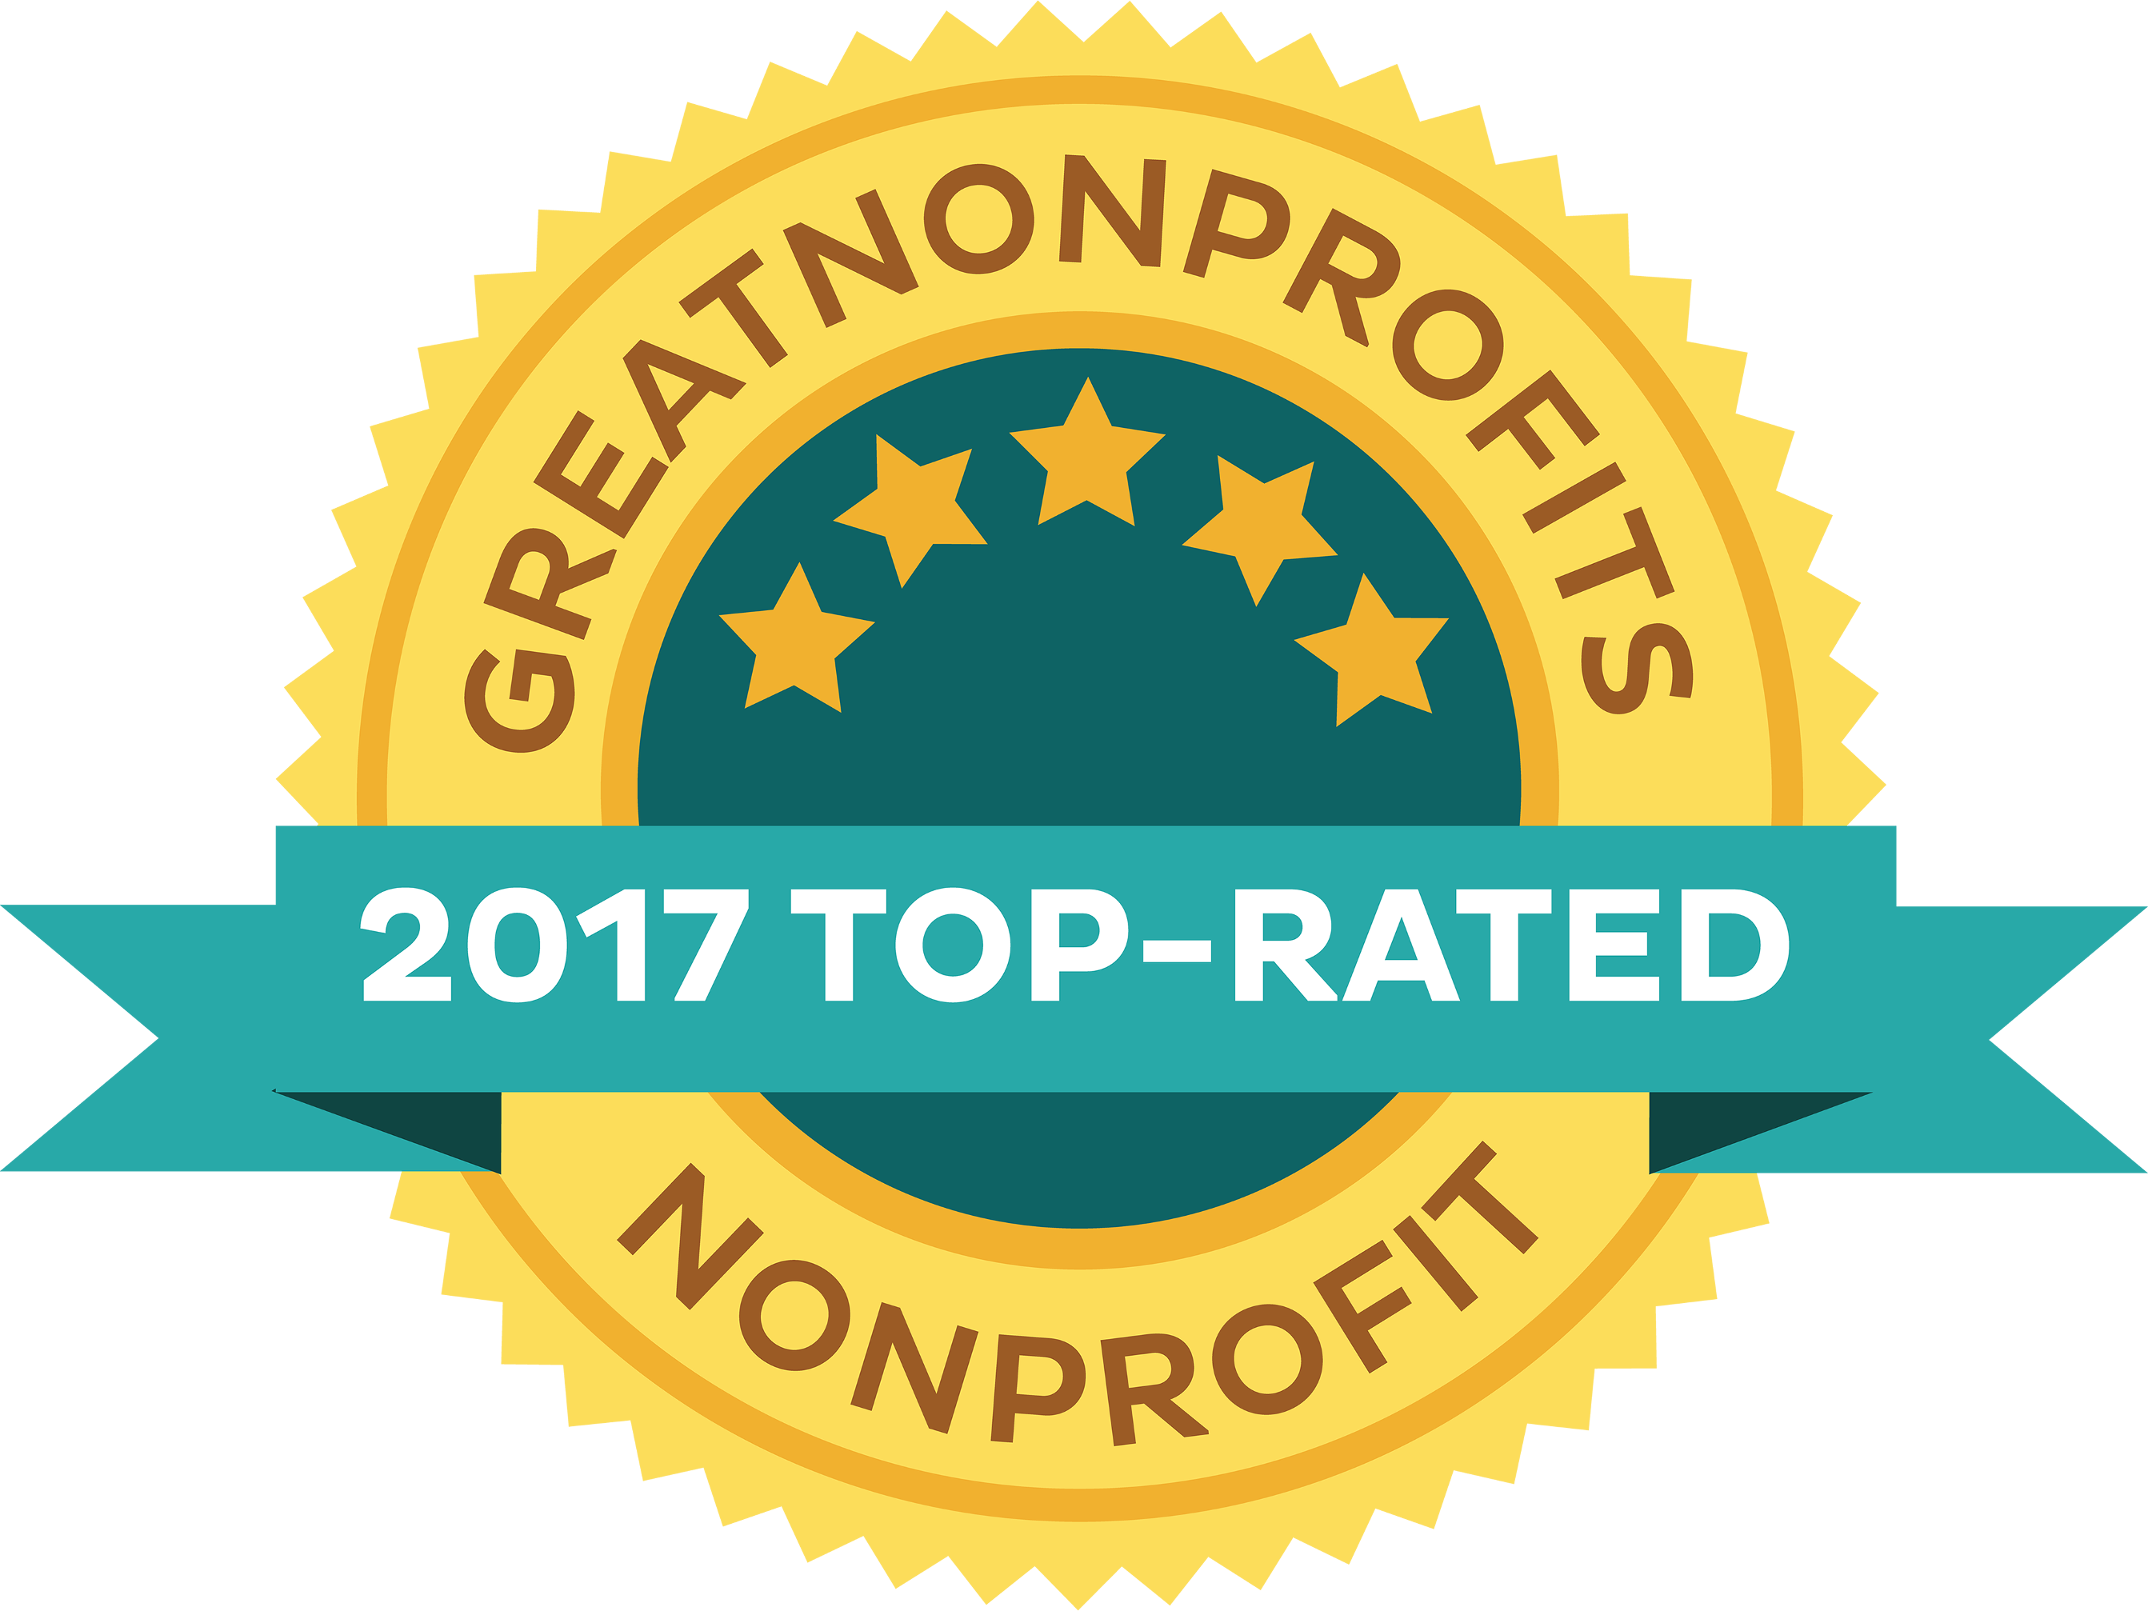 2017 Top-Rated Award from GreatNonprofits!